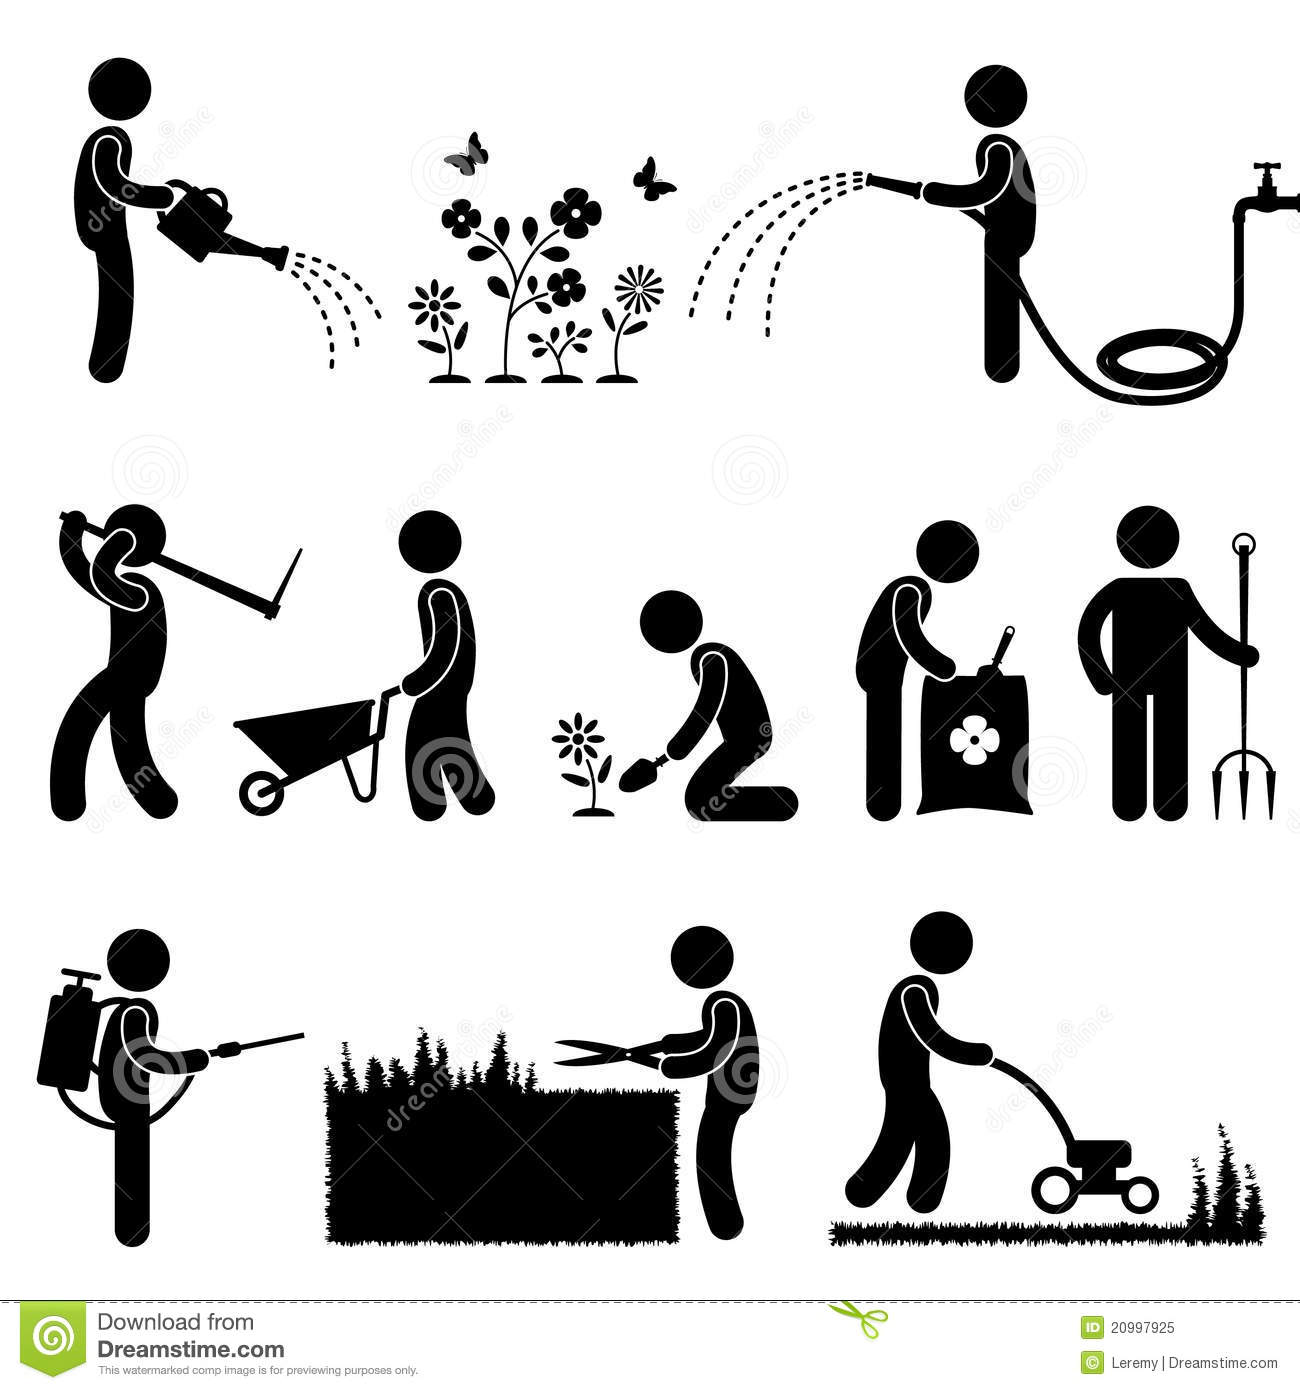 gardening work plant flower grass pictogram icon s royalty clip art lawn mower races clipart lawn mower black and white